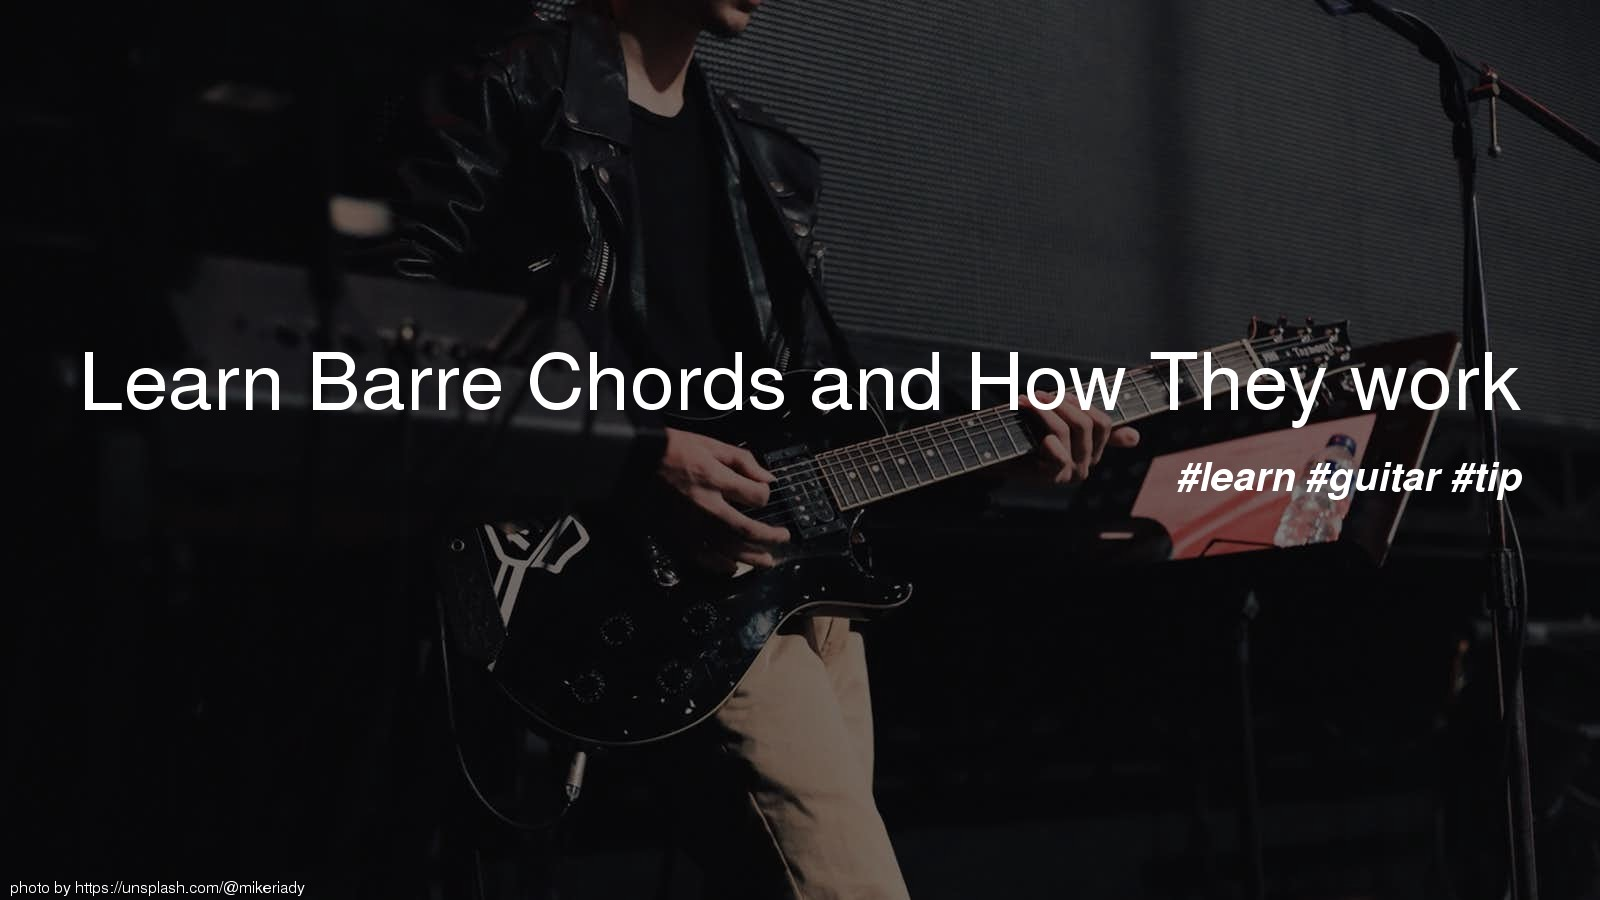 Learn Barre Chords and How They work